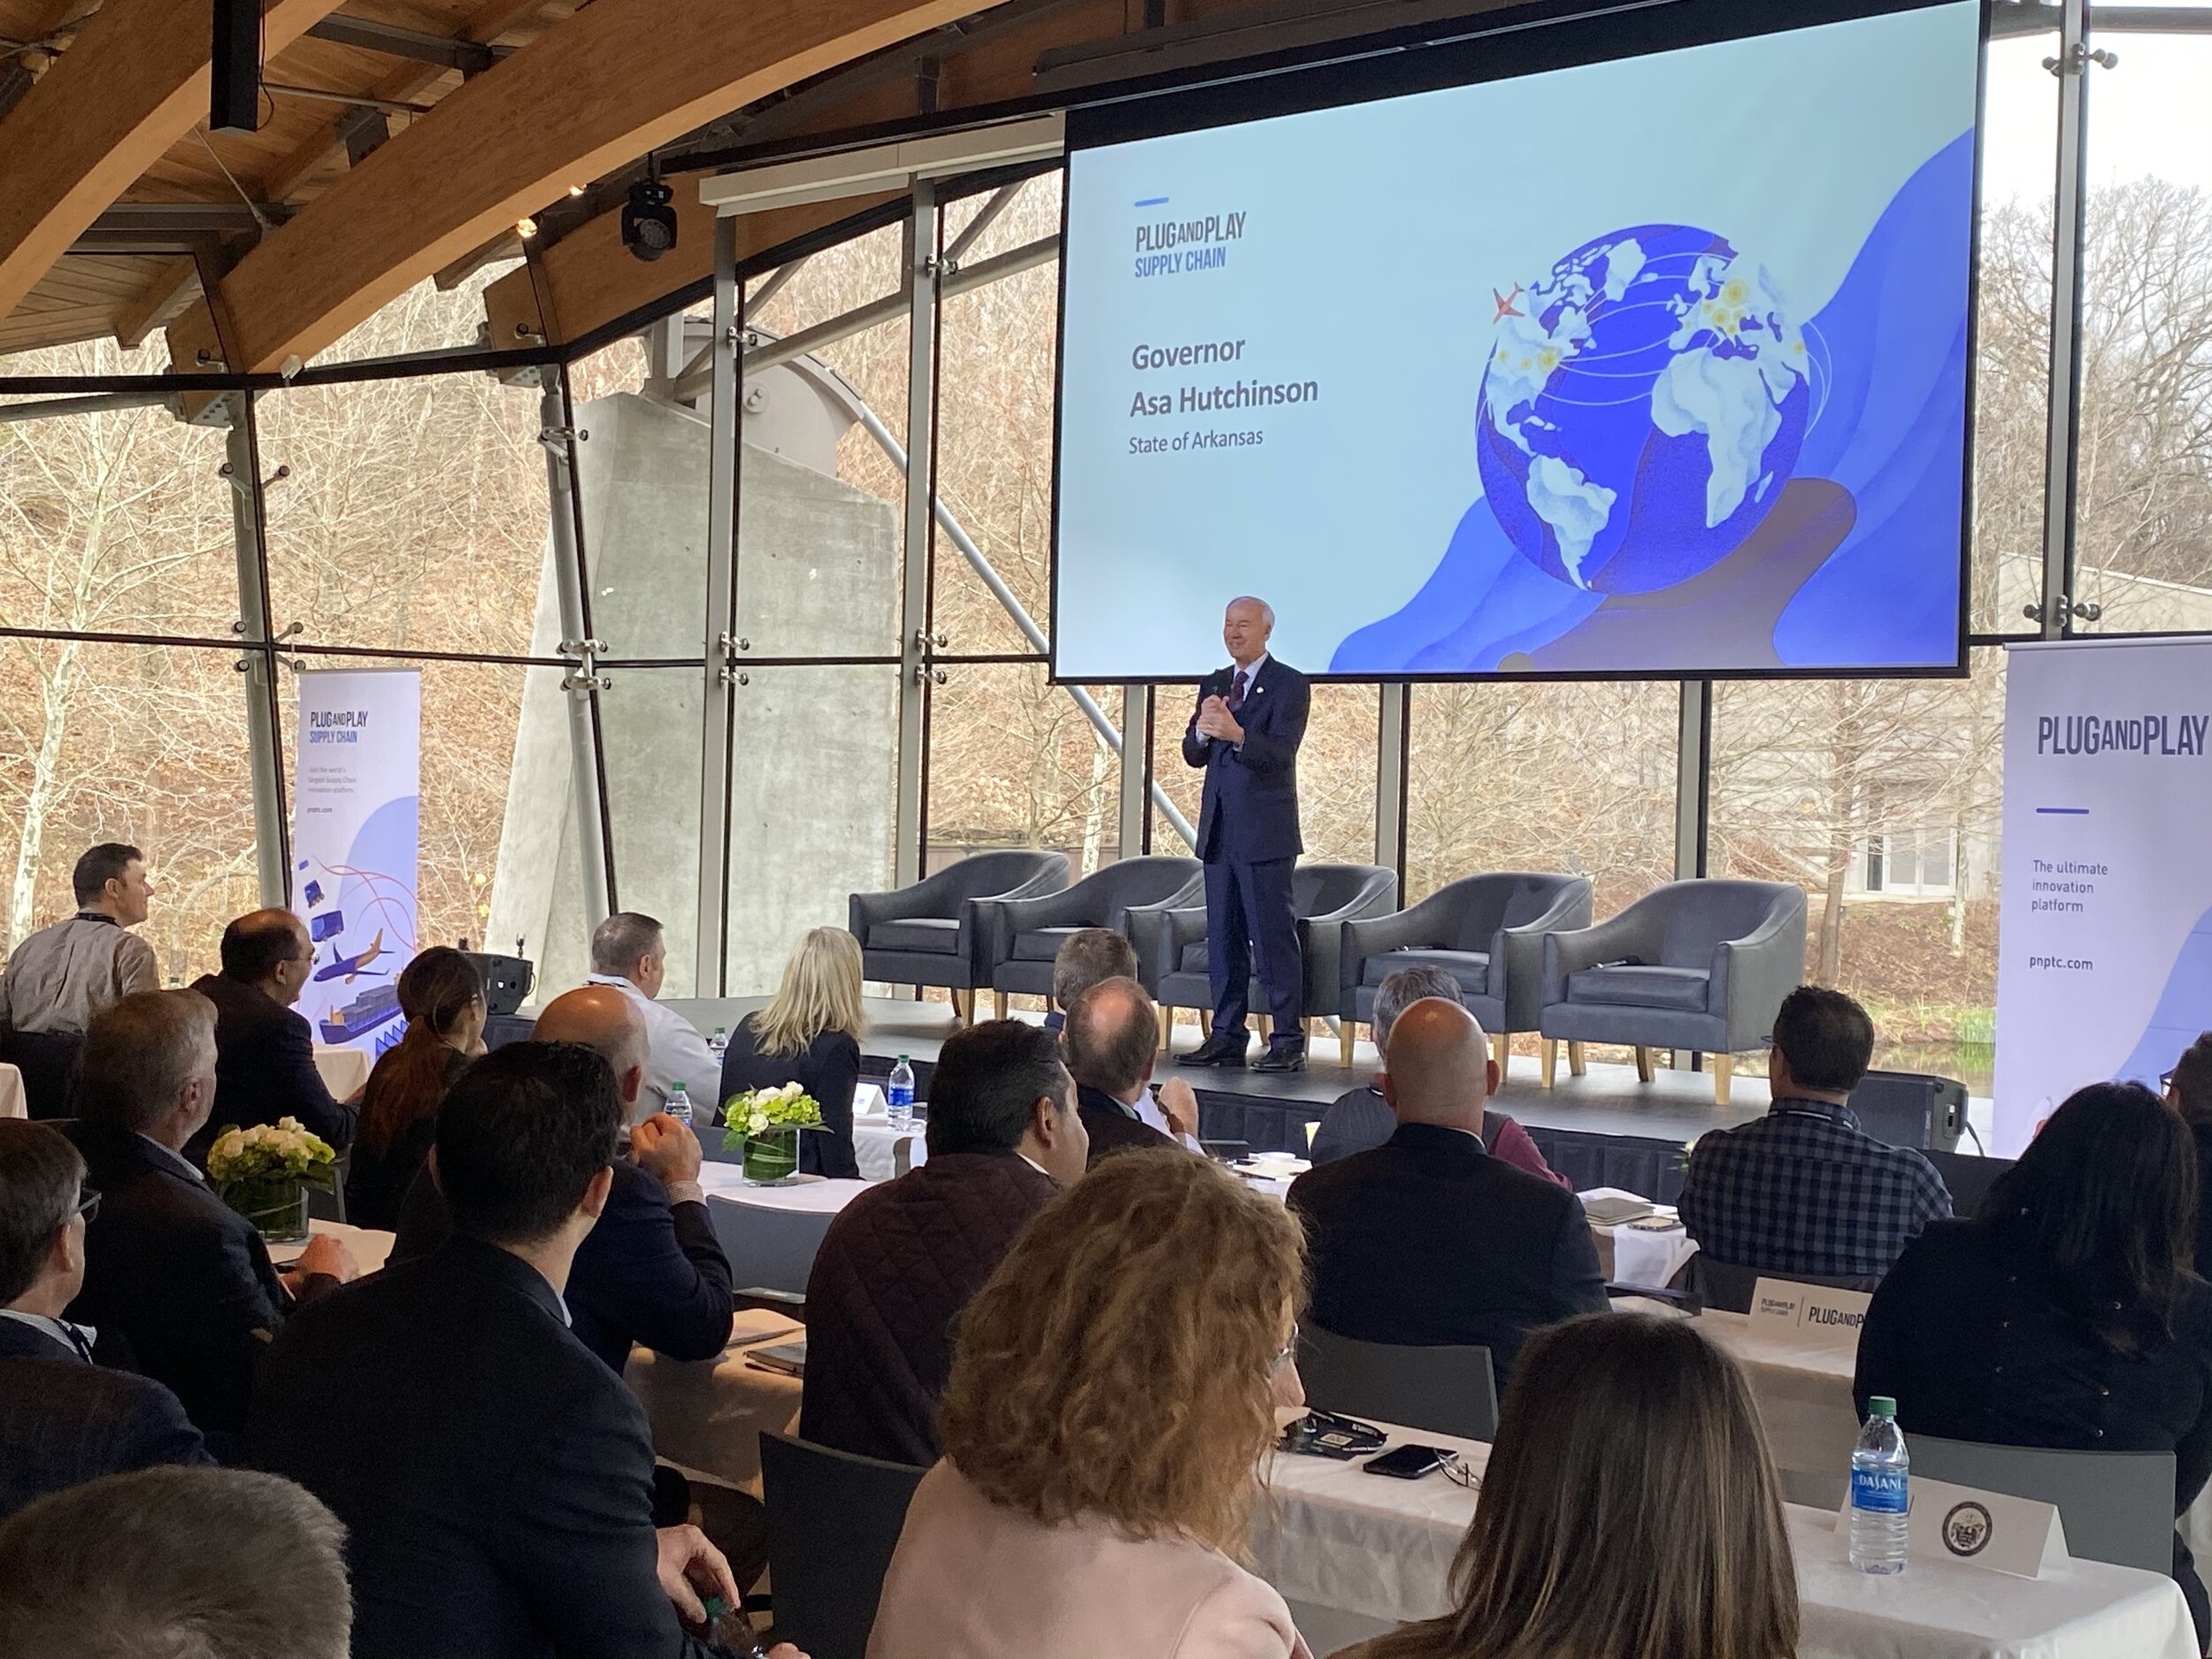 Gov. Asa Hutchinson addresses the crowd of the more than 200 attendees at the Plug and Play Batch 1 Summit on Jan. 31 at Crystal Bridges. Hutchinson later met with several of the company founders who have expressed interest in opening offices in the state.